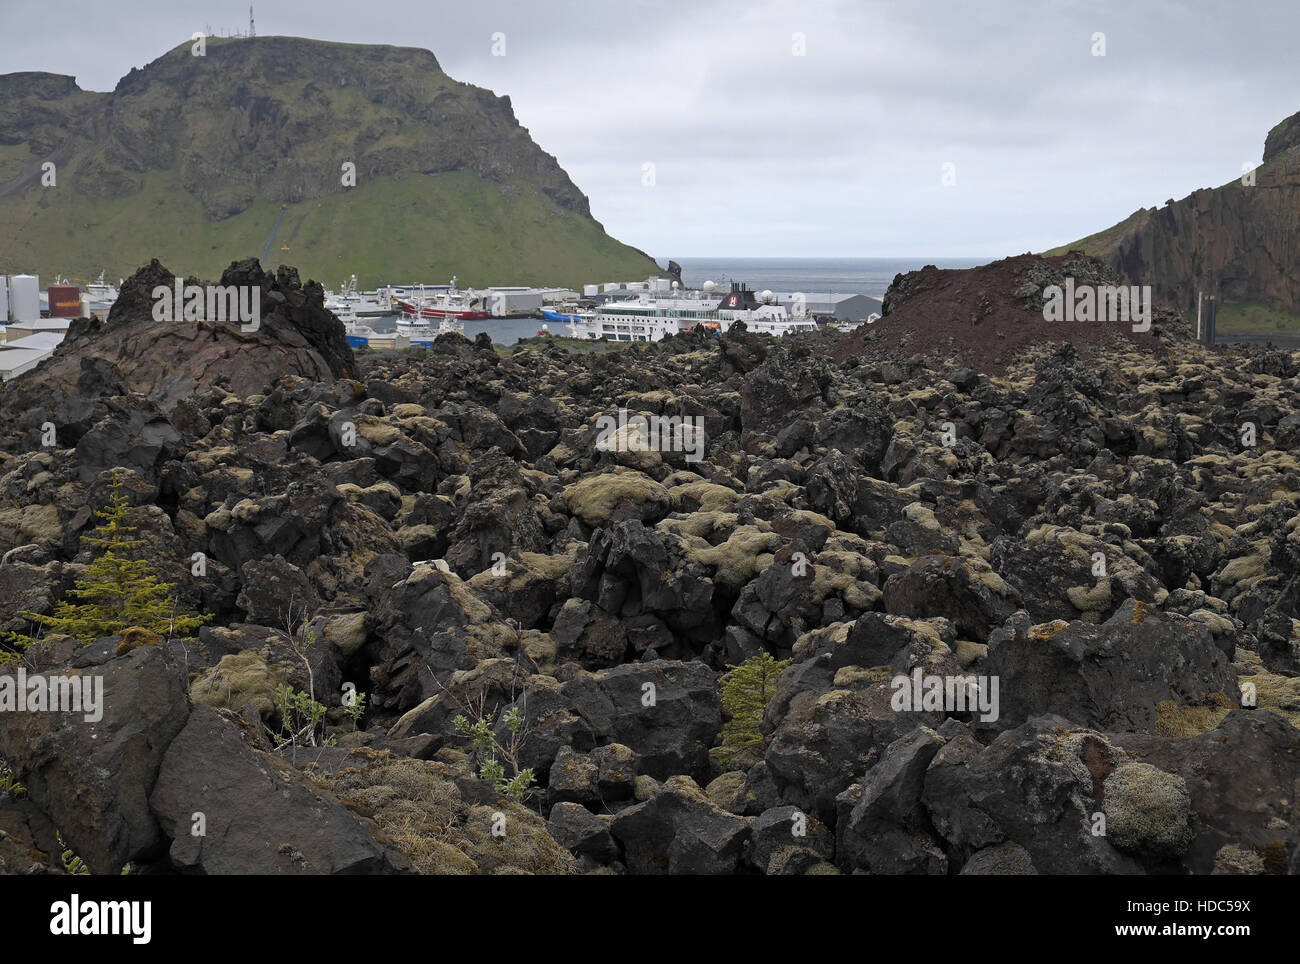 The harbour and town of Heimaey, seen over the lava field formed by the eruption of Eldfell in 1973, Heimaey, Iceland. - Stock Image